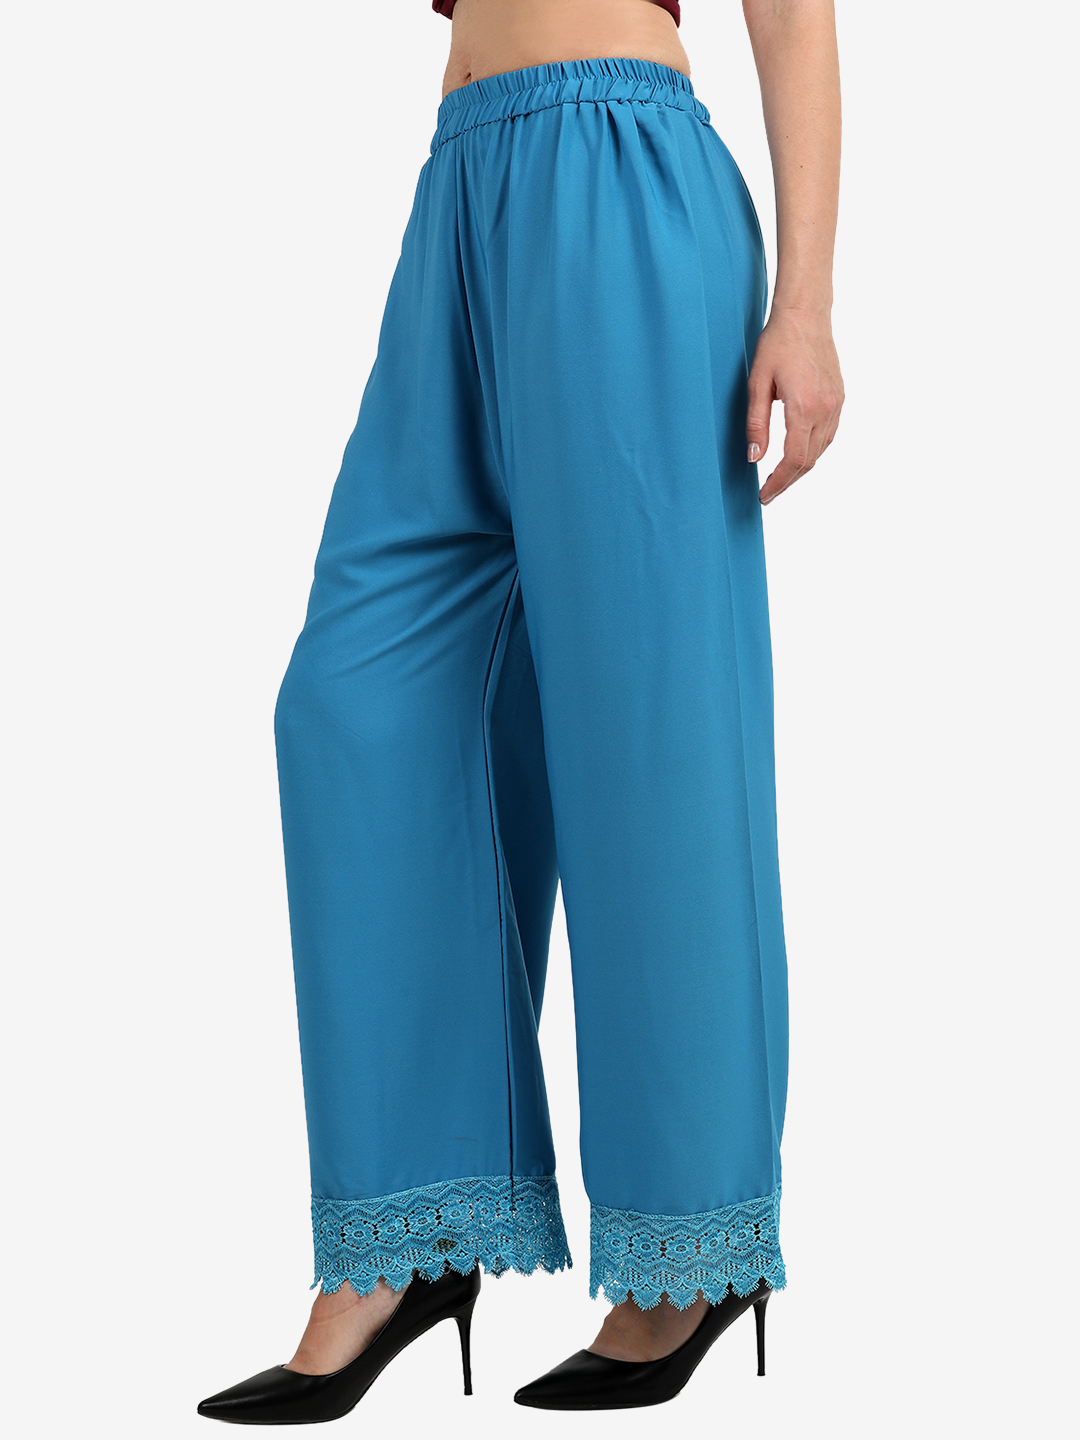 Florence Turquoise Blue Crepe Crochet Stitched Palazzo